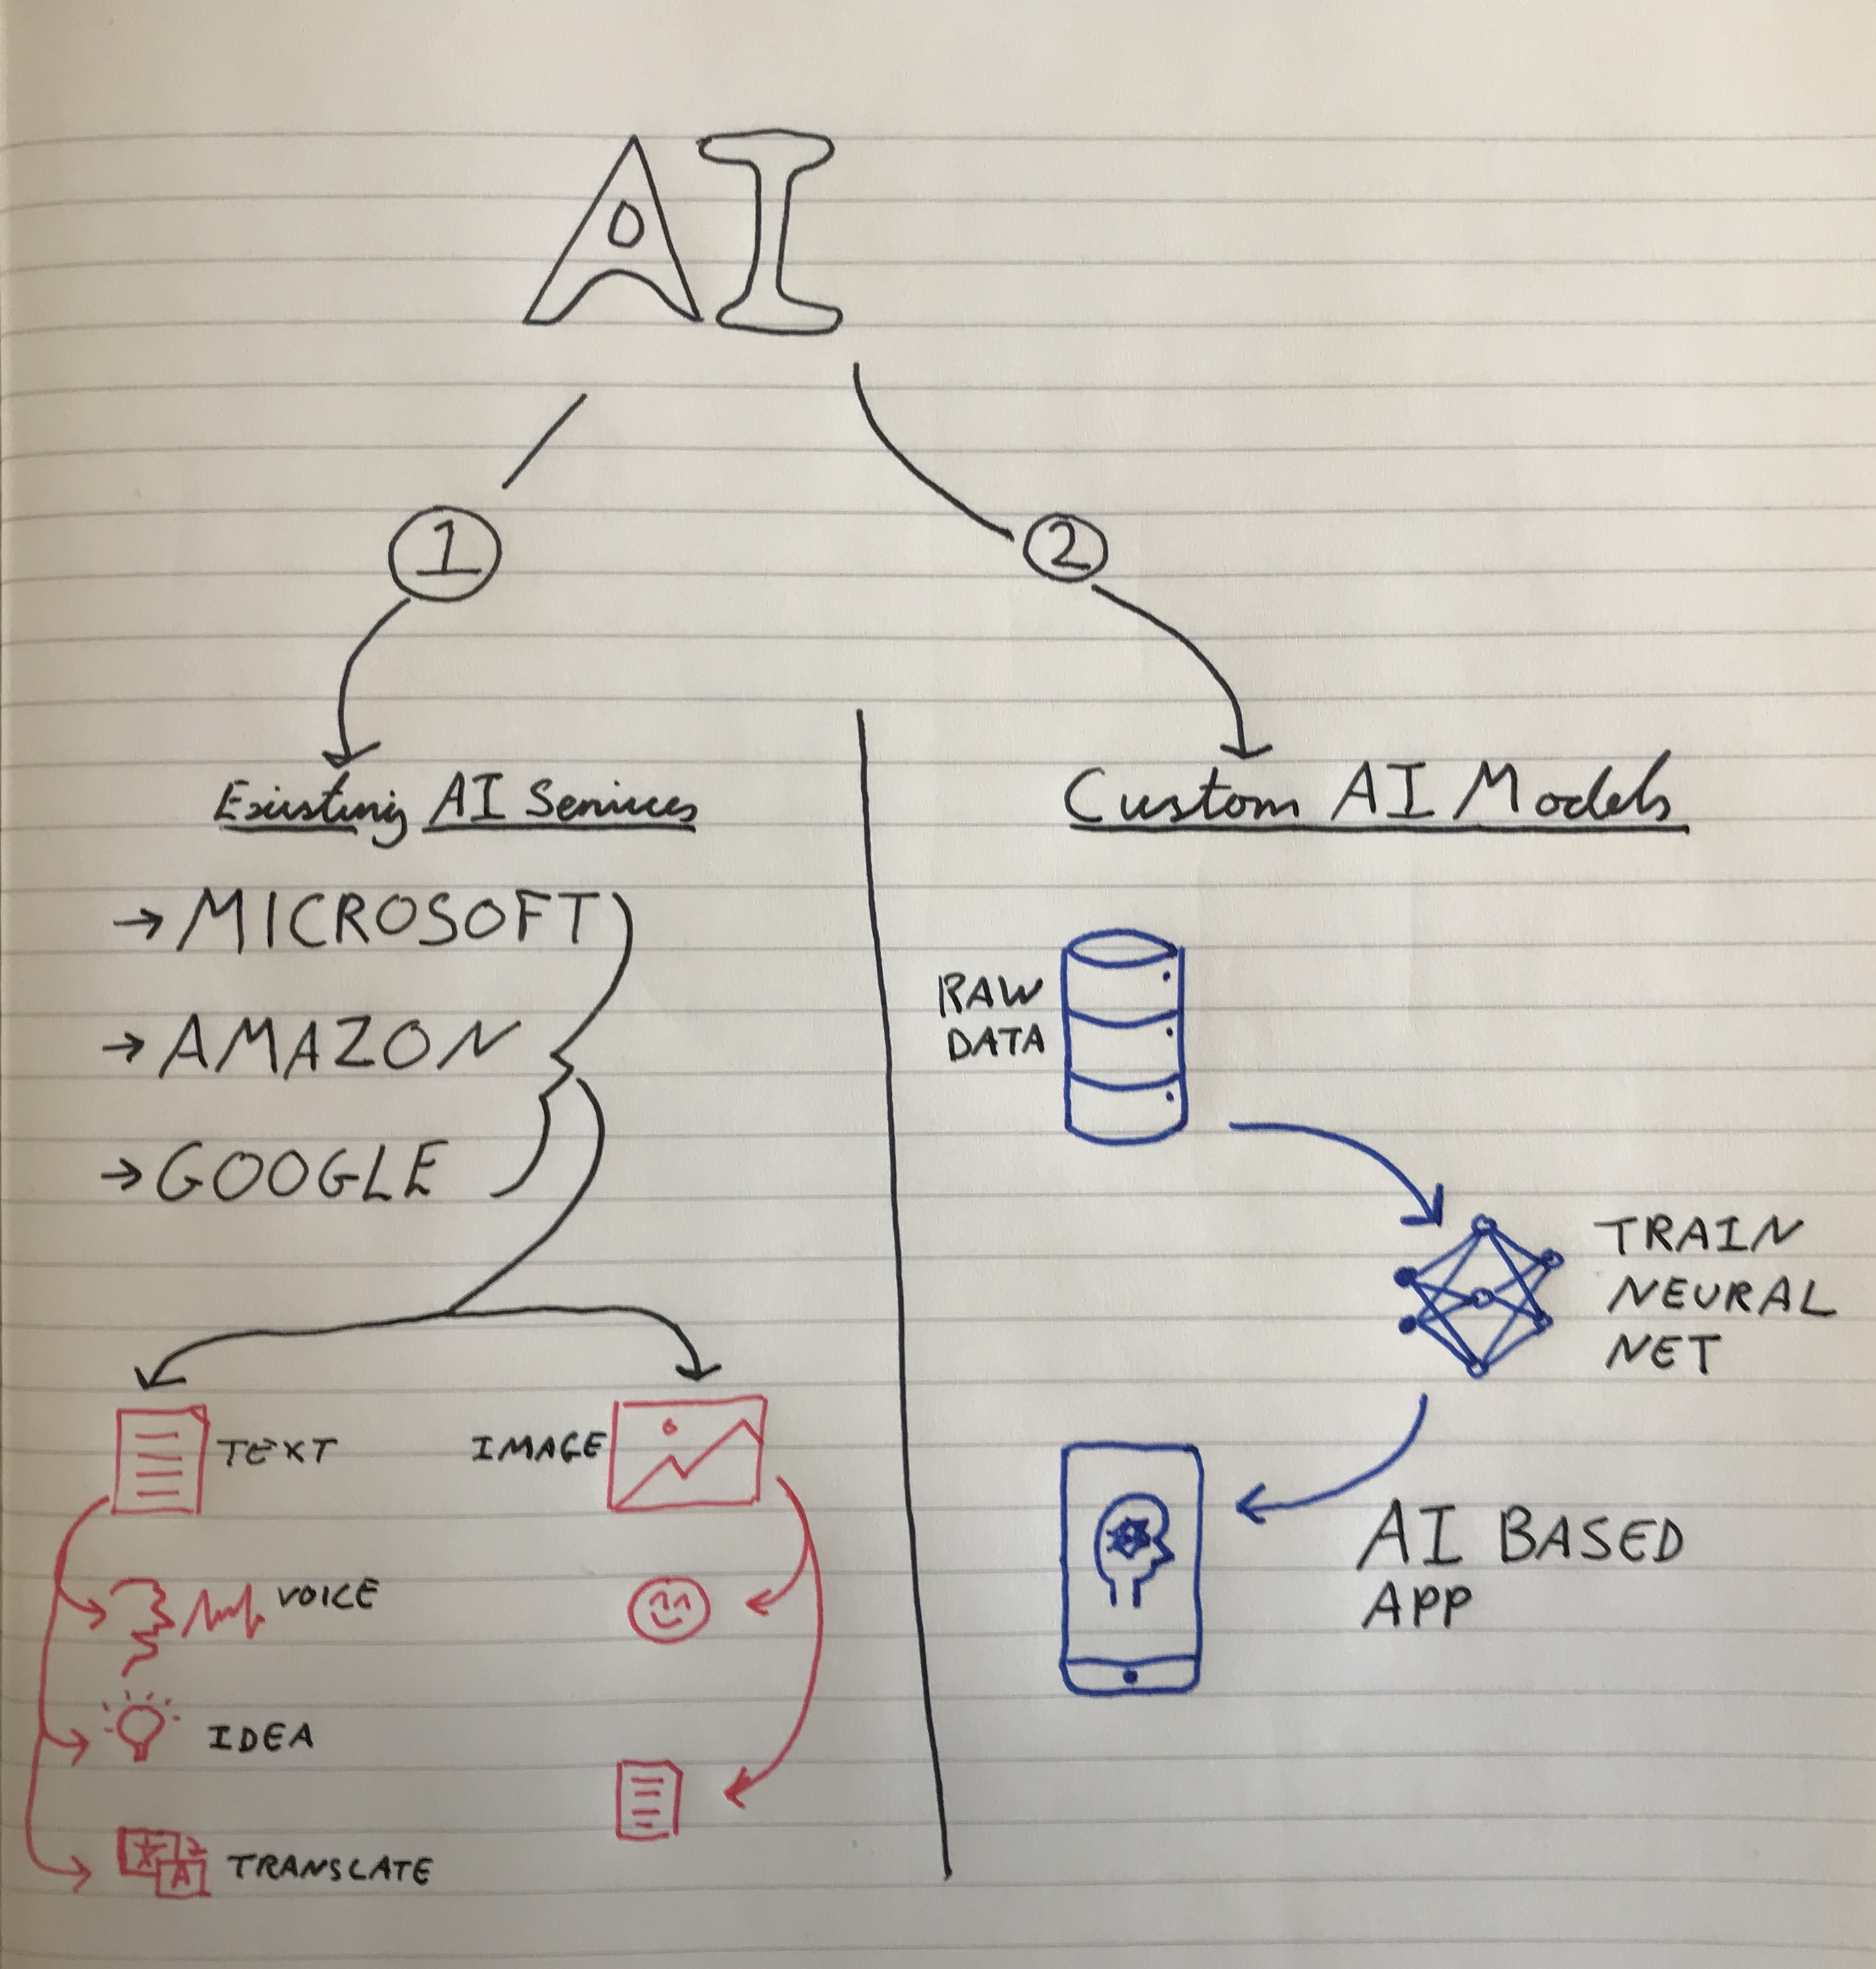 Two ways of using AI